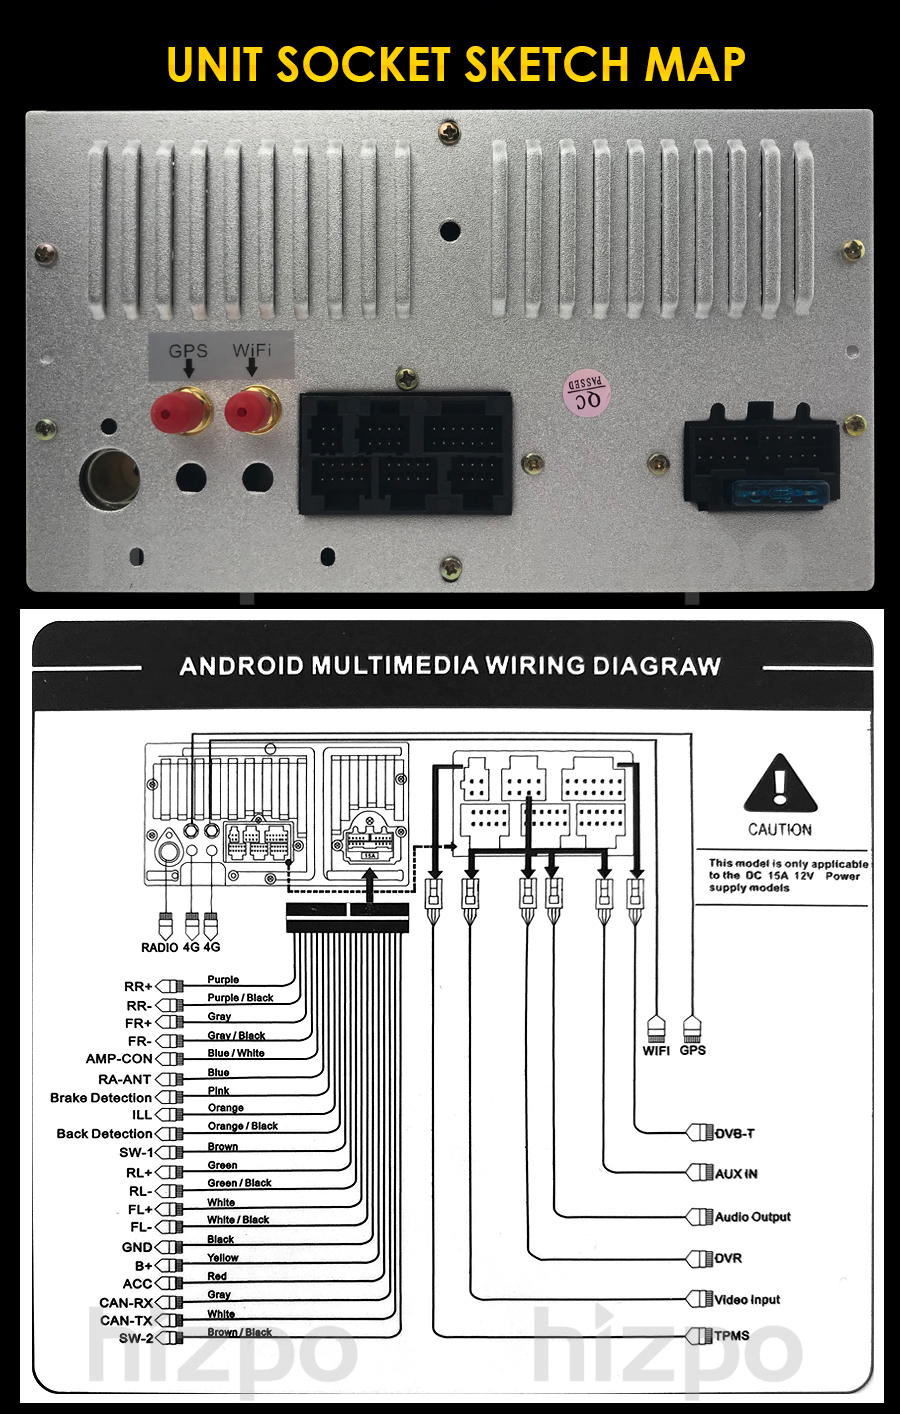 Android Hizpo Wiring Diagram on 9.2 speaker placement diagram, 9.2 surround sound diagram, home theater setup diagram, the 5 channels of distribution diagram, system interface diagram, telecommunications network diagram,